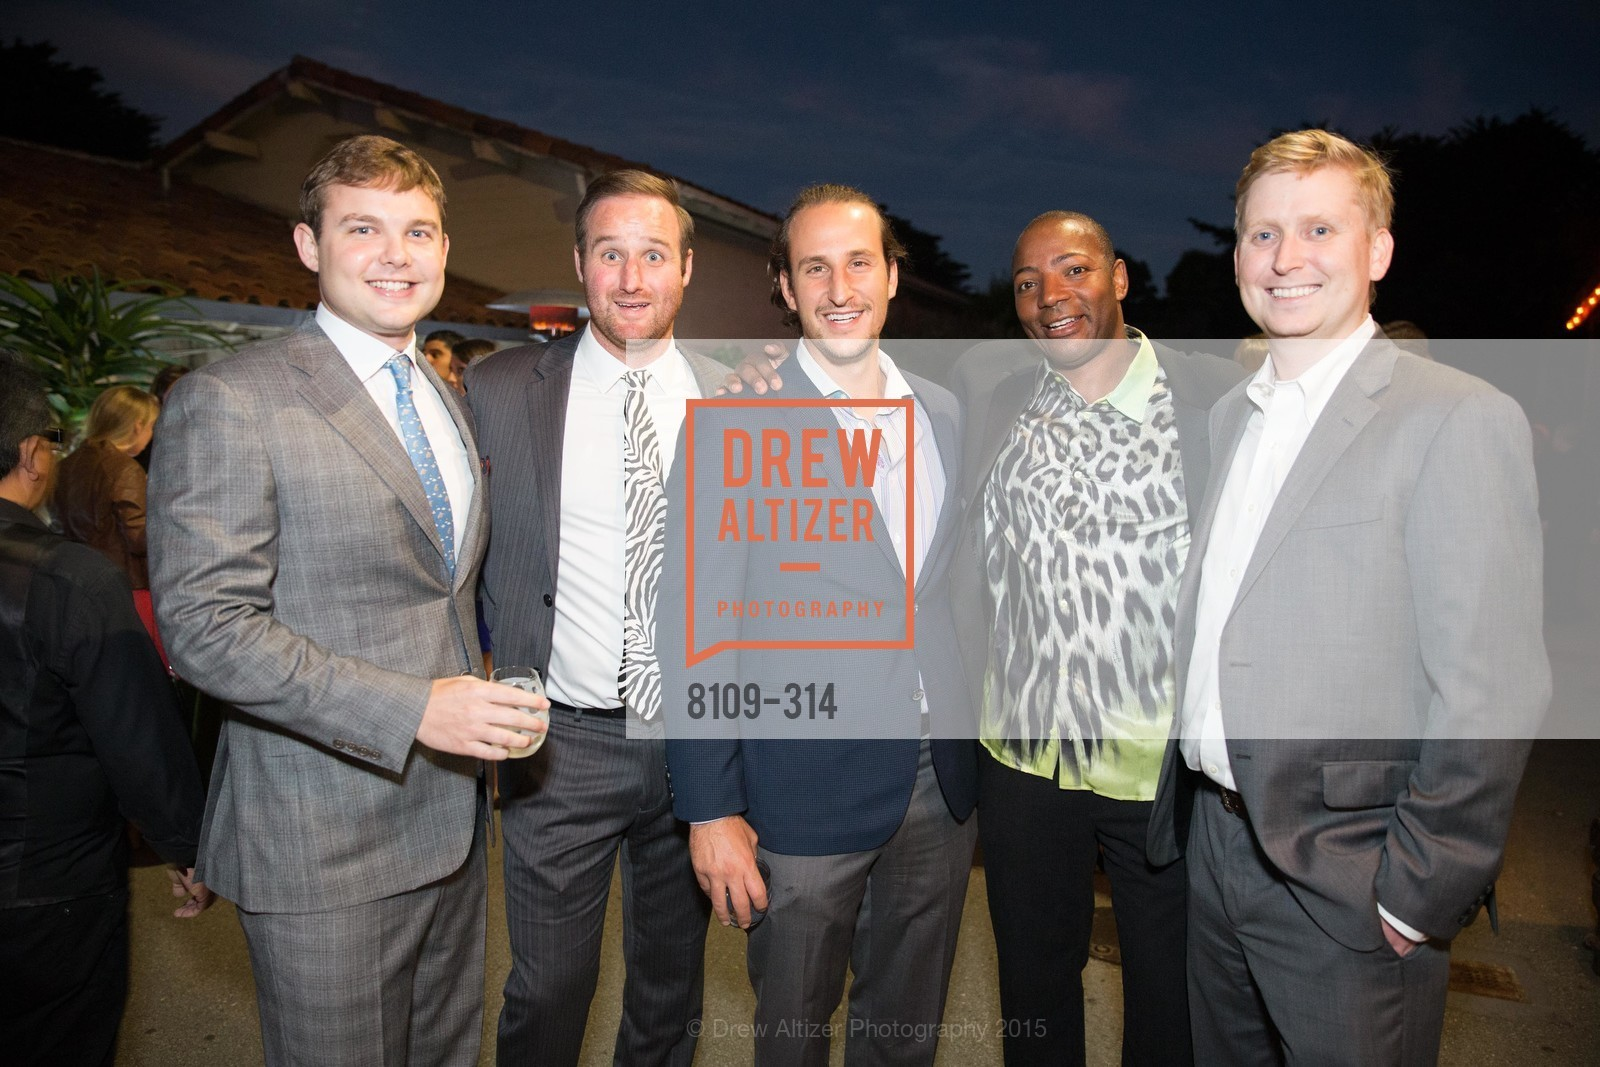 Will Andereck, Greg Vlahos, Waukeen McCoy, John Roman, San Francisco Zoo Fur Ball, San Francisco Zoo, September 25th, 2015,Drew Altizer, Drew Altizer Photography, full-service agency, private events, San Francisco photographer, photographer california